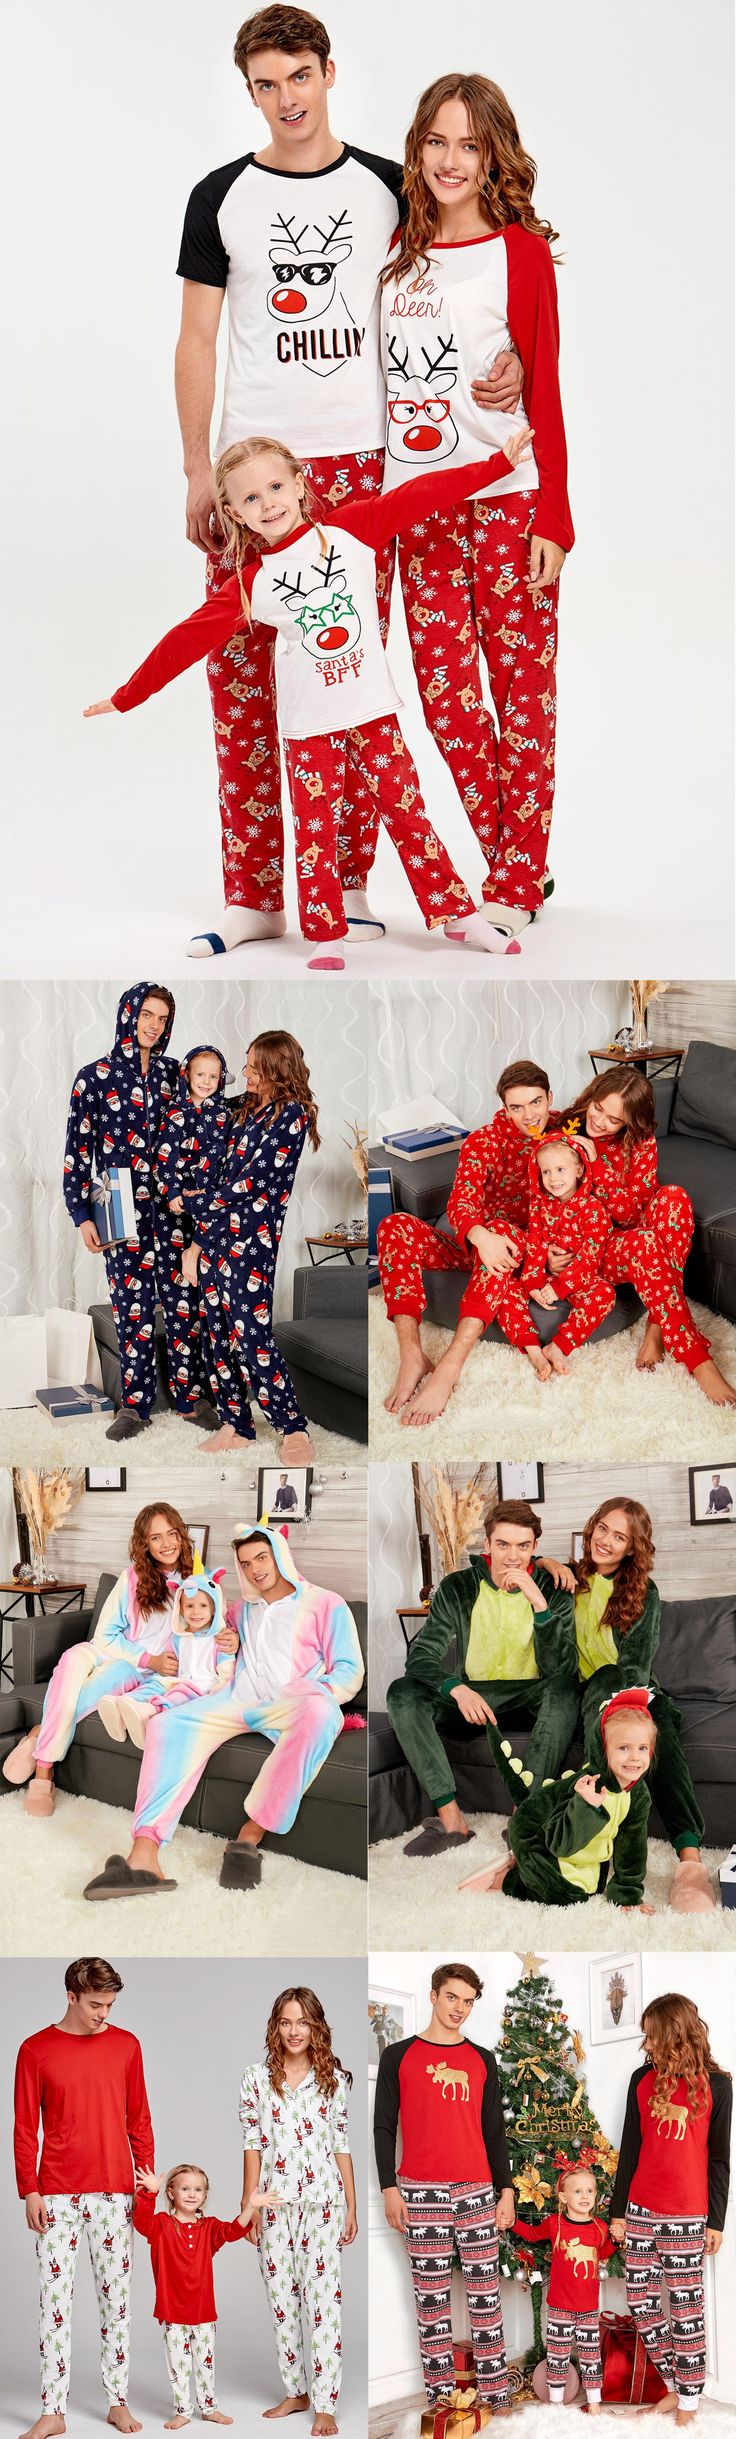 Up to 80% off,Rosewholesale Matching Family Christmas Pajama Set | Rosewholesale,rosewholesale.com,rosewholesale for men,rosewholesale dress plus size,rosewholesale clothes,rosewholesale.com clothing,family pajamas,christmas family pajamas,christmas party wear, Onesie pajamas | #rosewholesale #pajamas #family #christmas